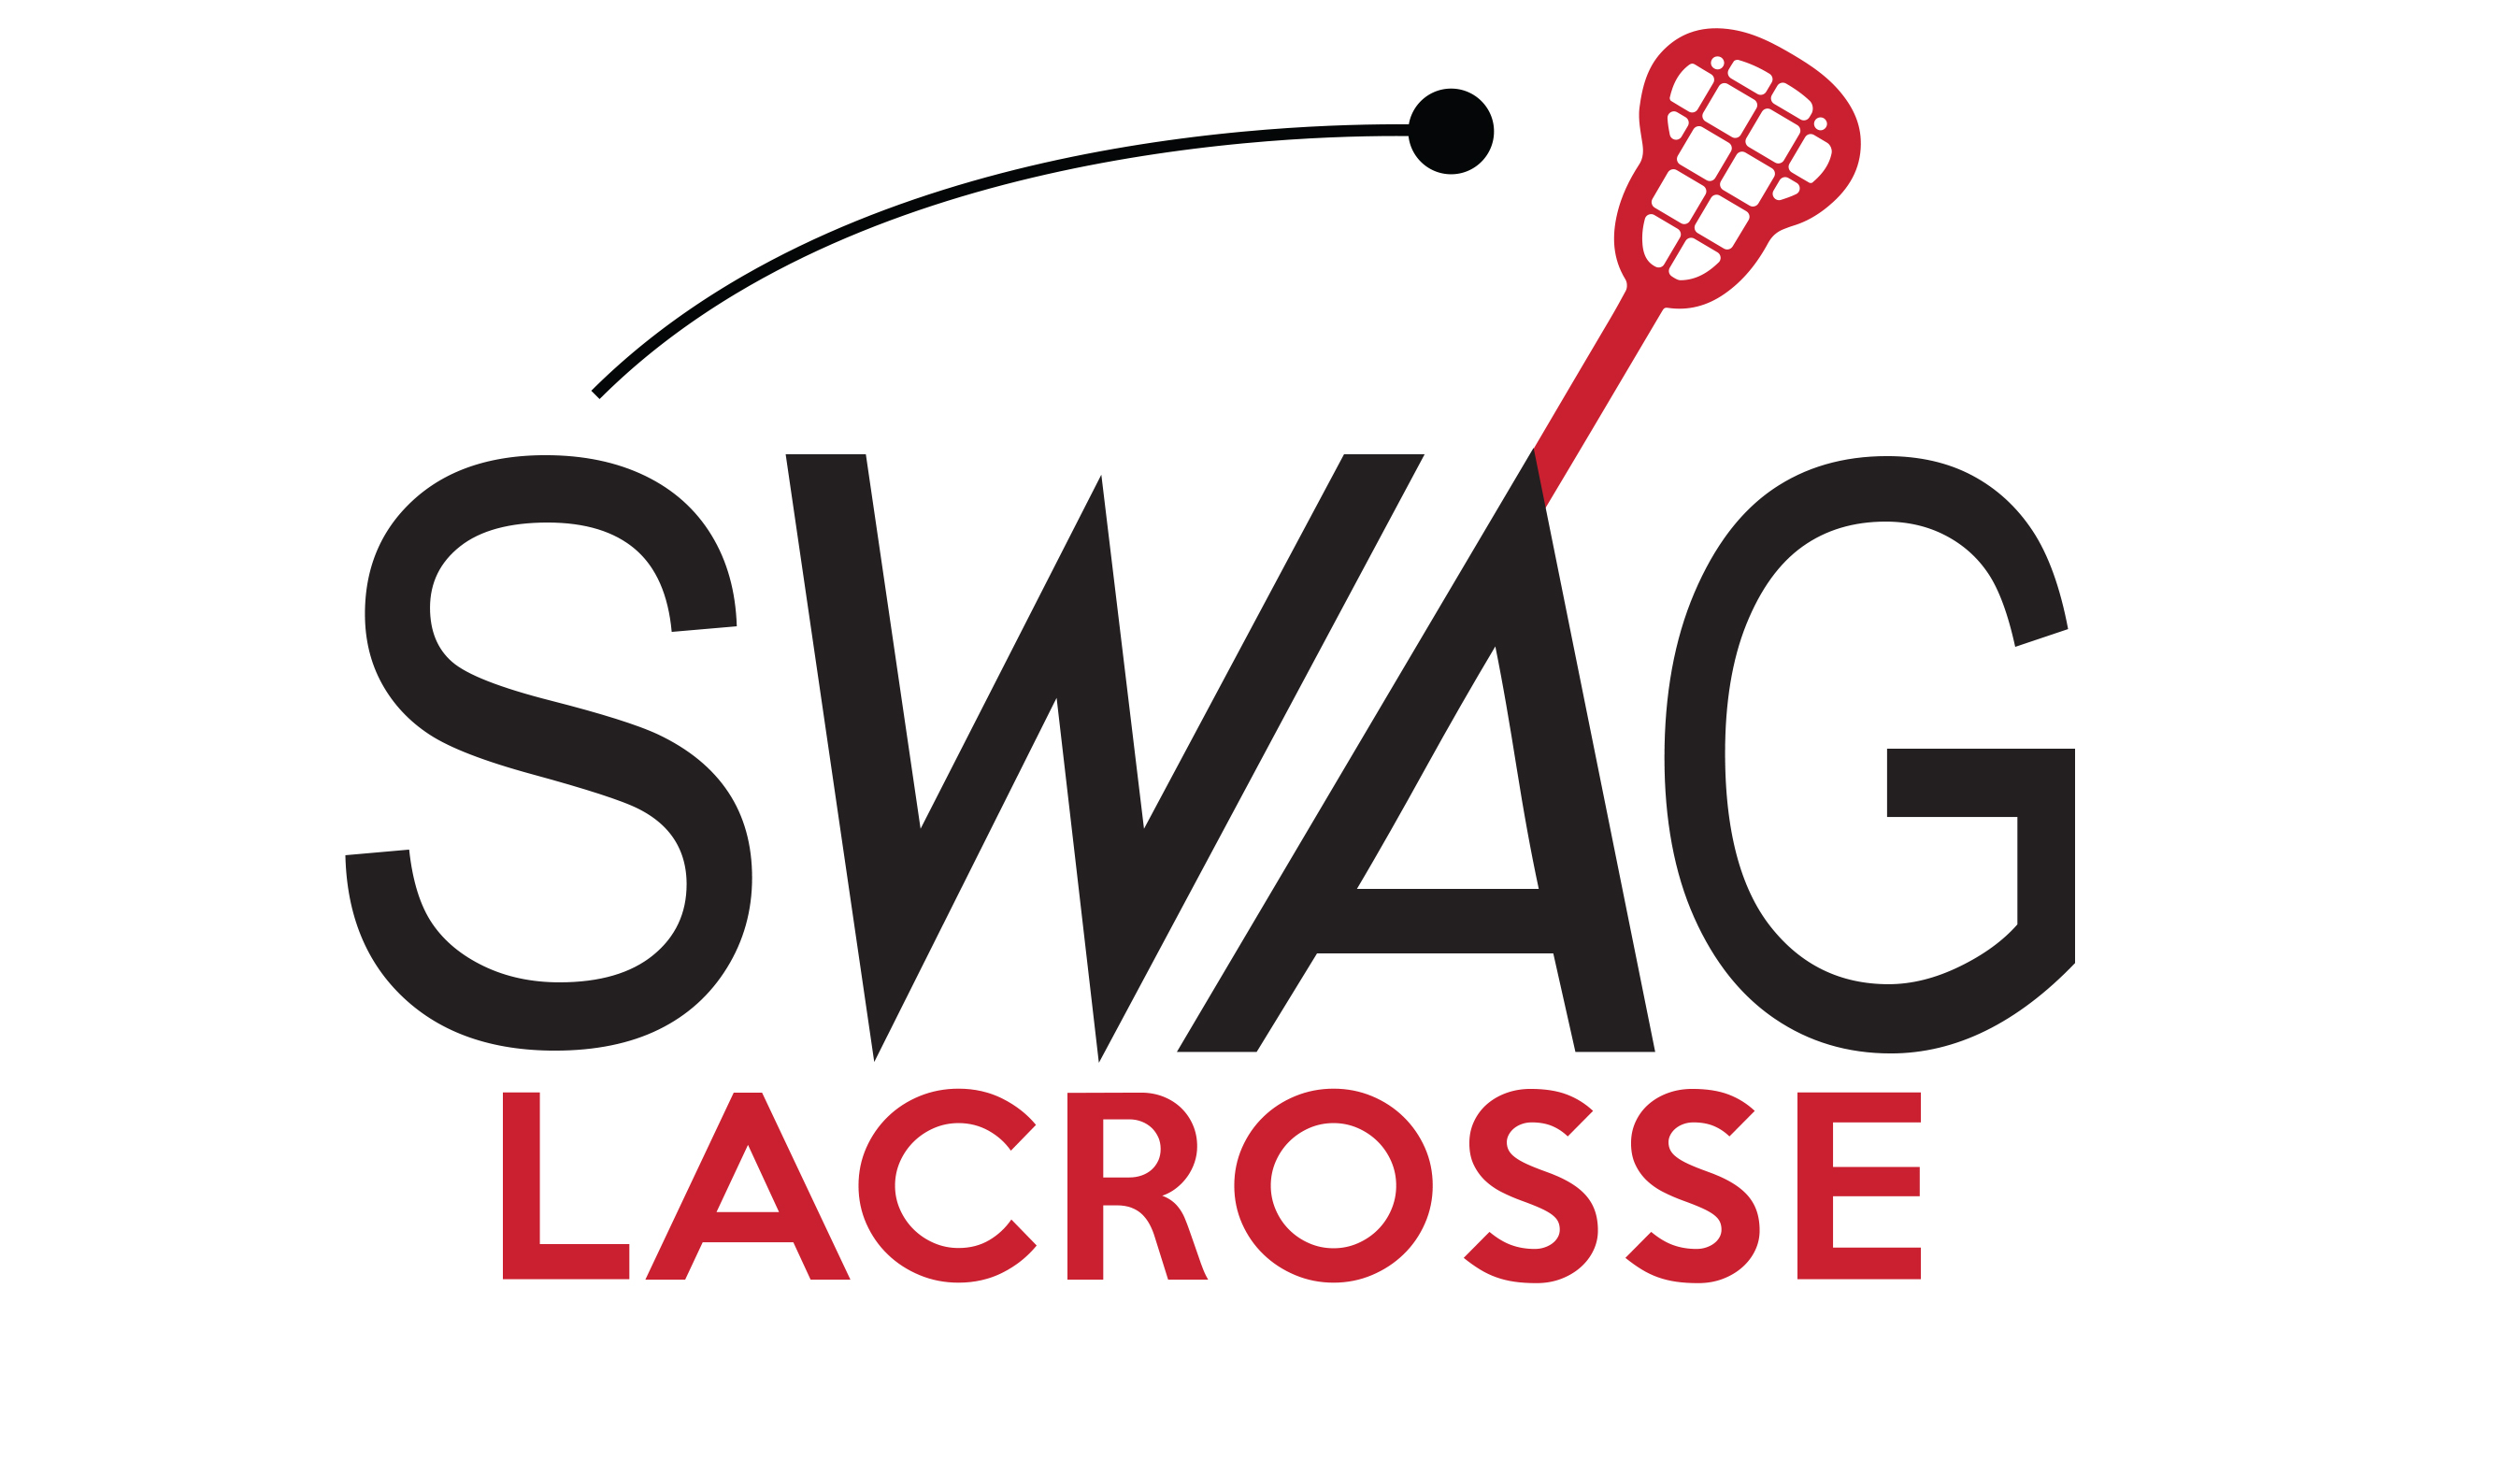 Howell_SWAGLacrossLogo_black